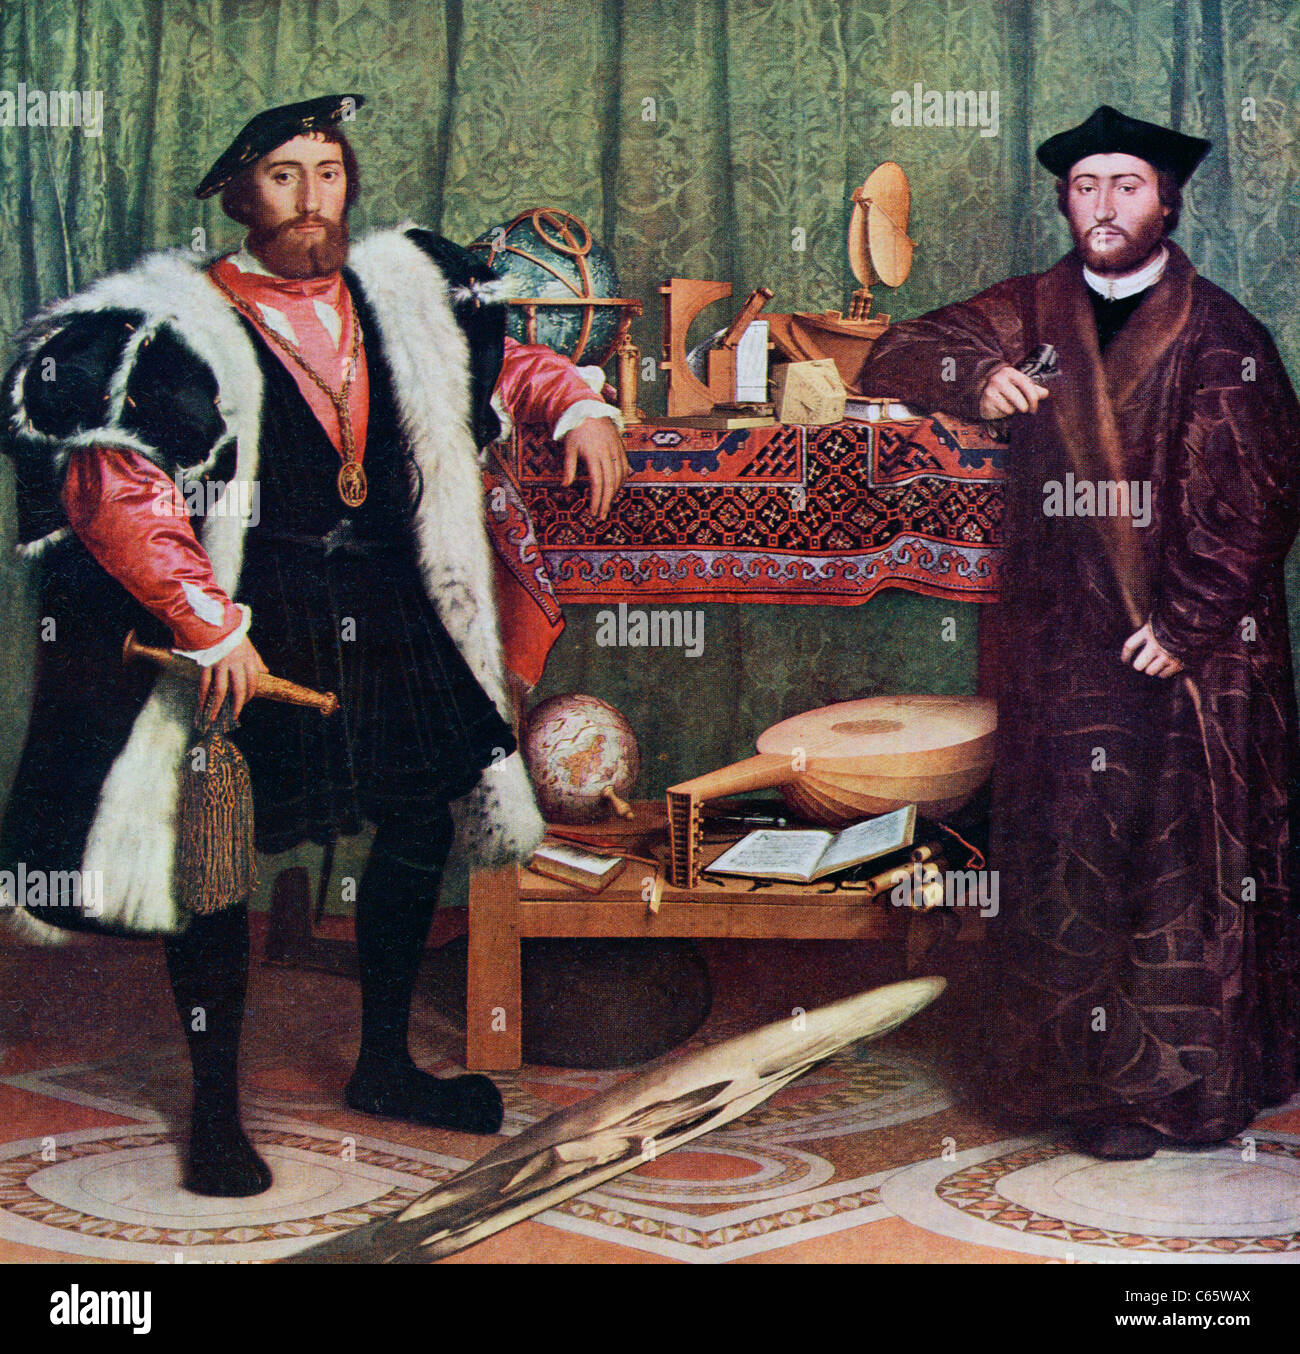 The Ambassadors by Hans Holbein the Younger. - Stock Image